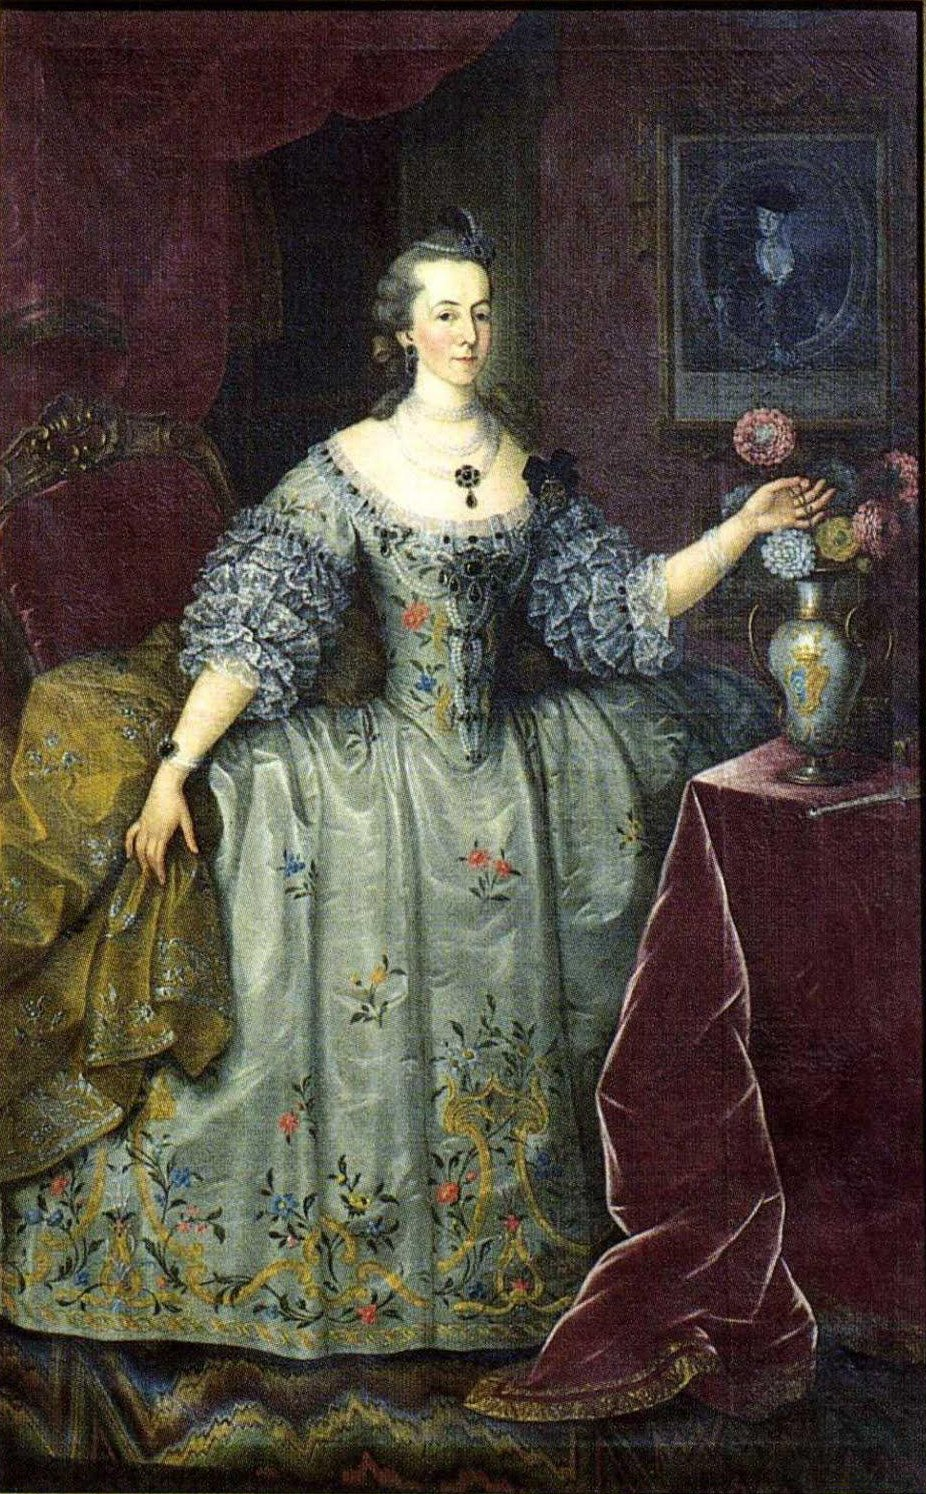 The Marquesa of Pombal